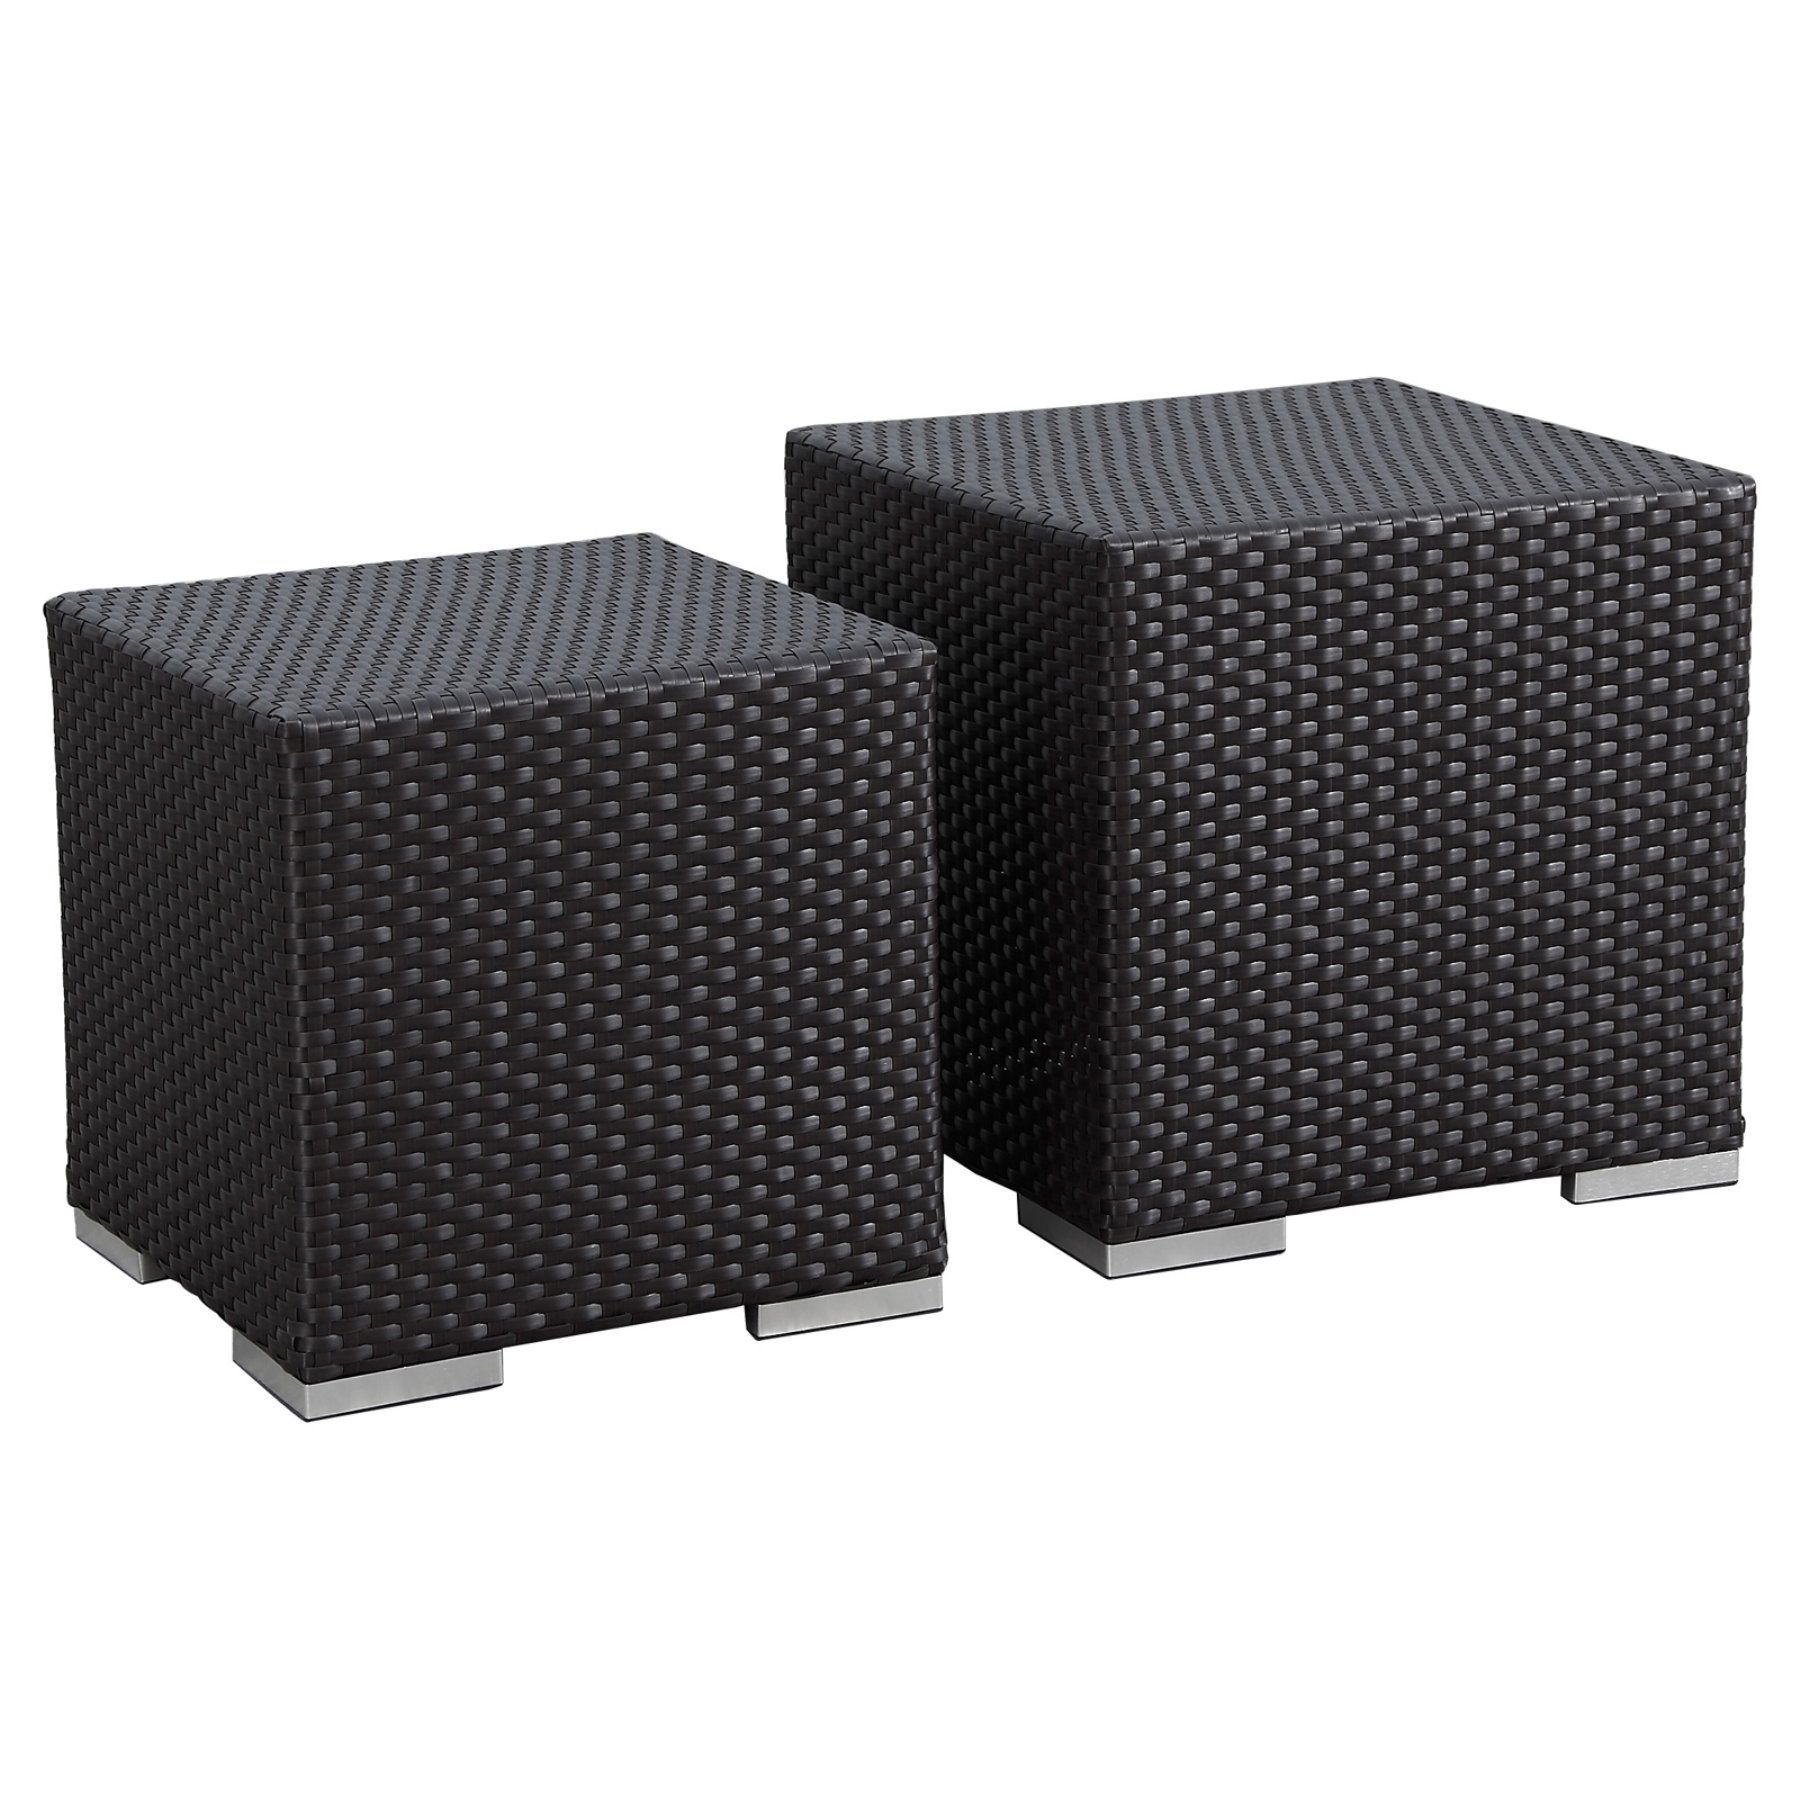 Outdoor Sunset West Solana Wicker Patio Nesting Tables   Set Of 2   1501 NTL